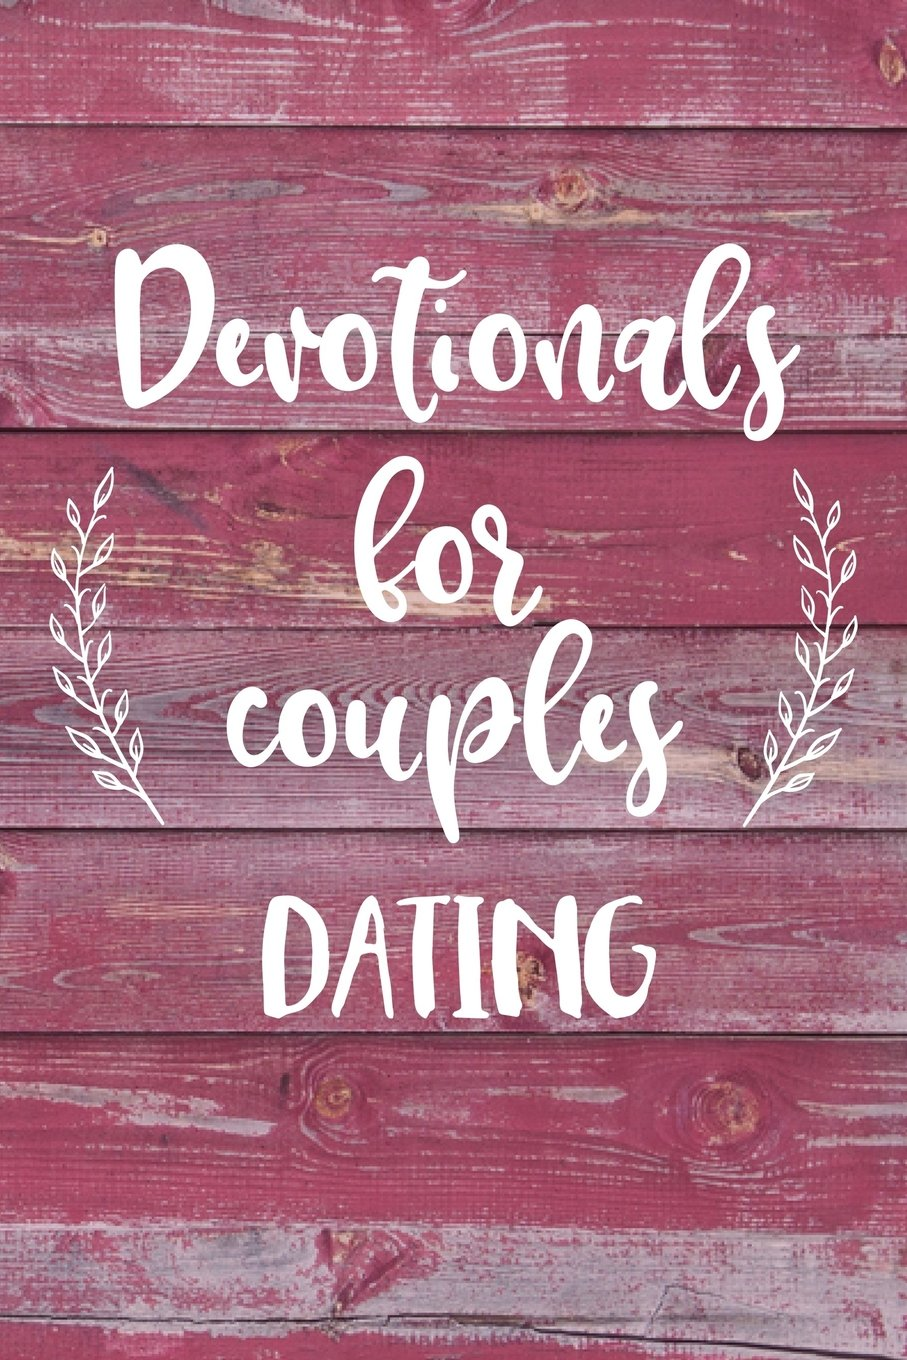 dating couples pray together